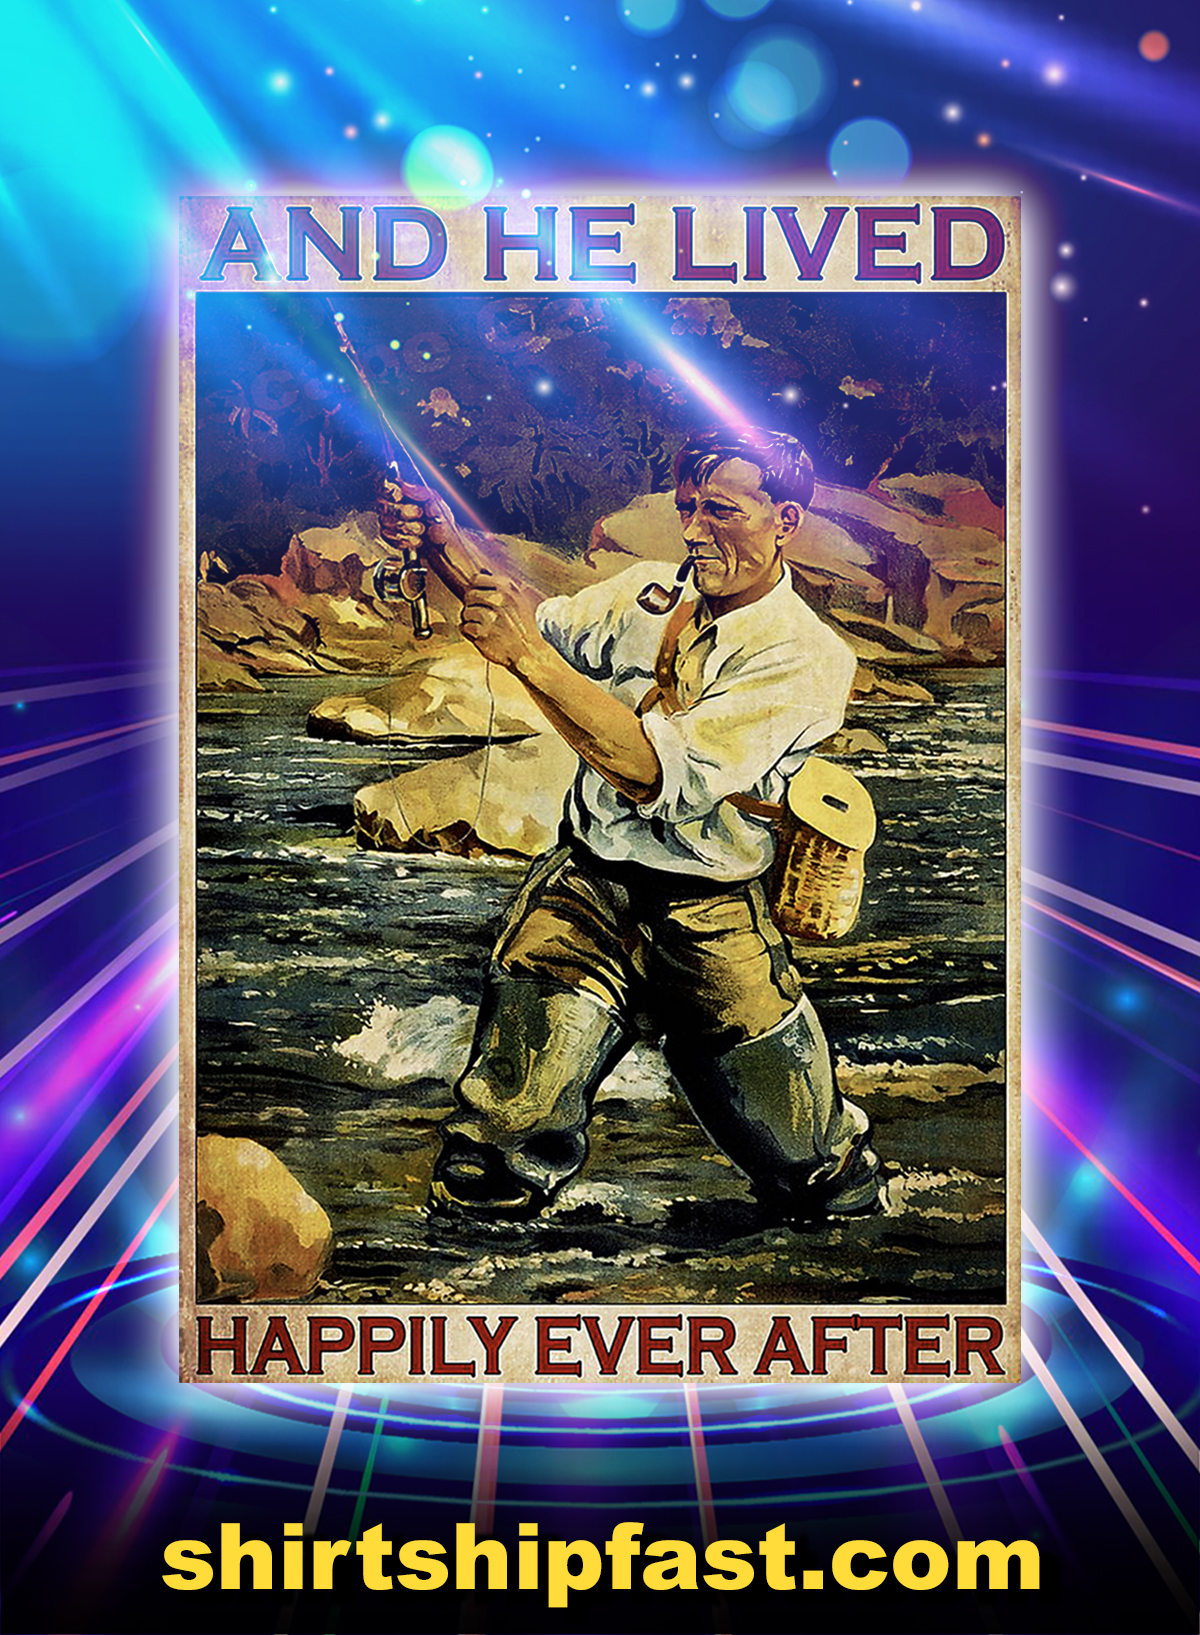 Fishing and he lived happily ever after poster - A1